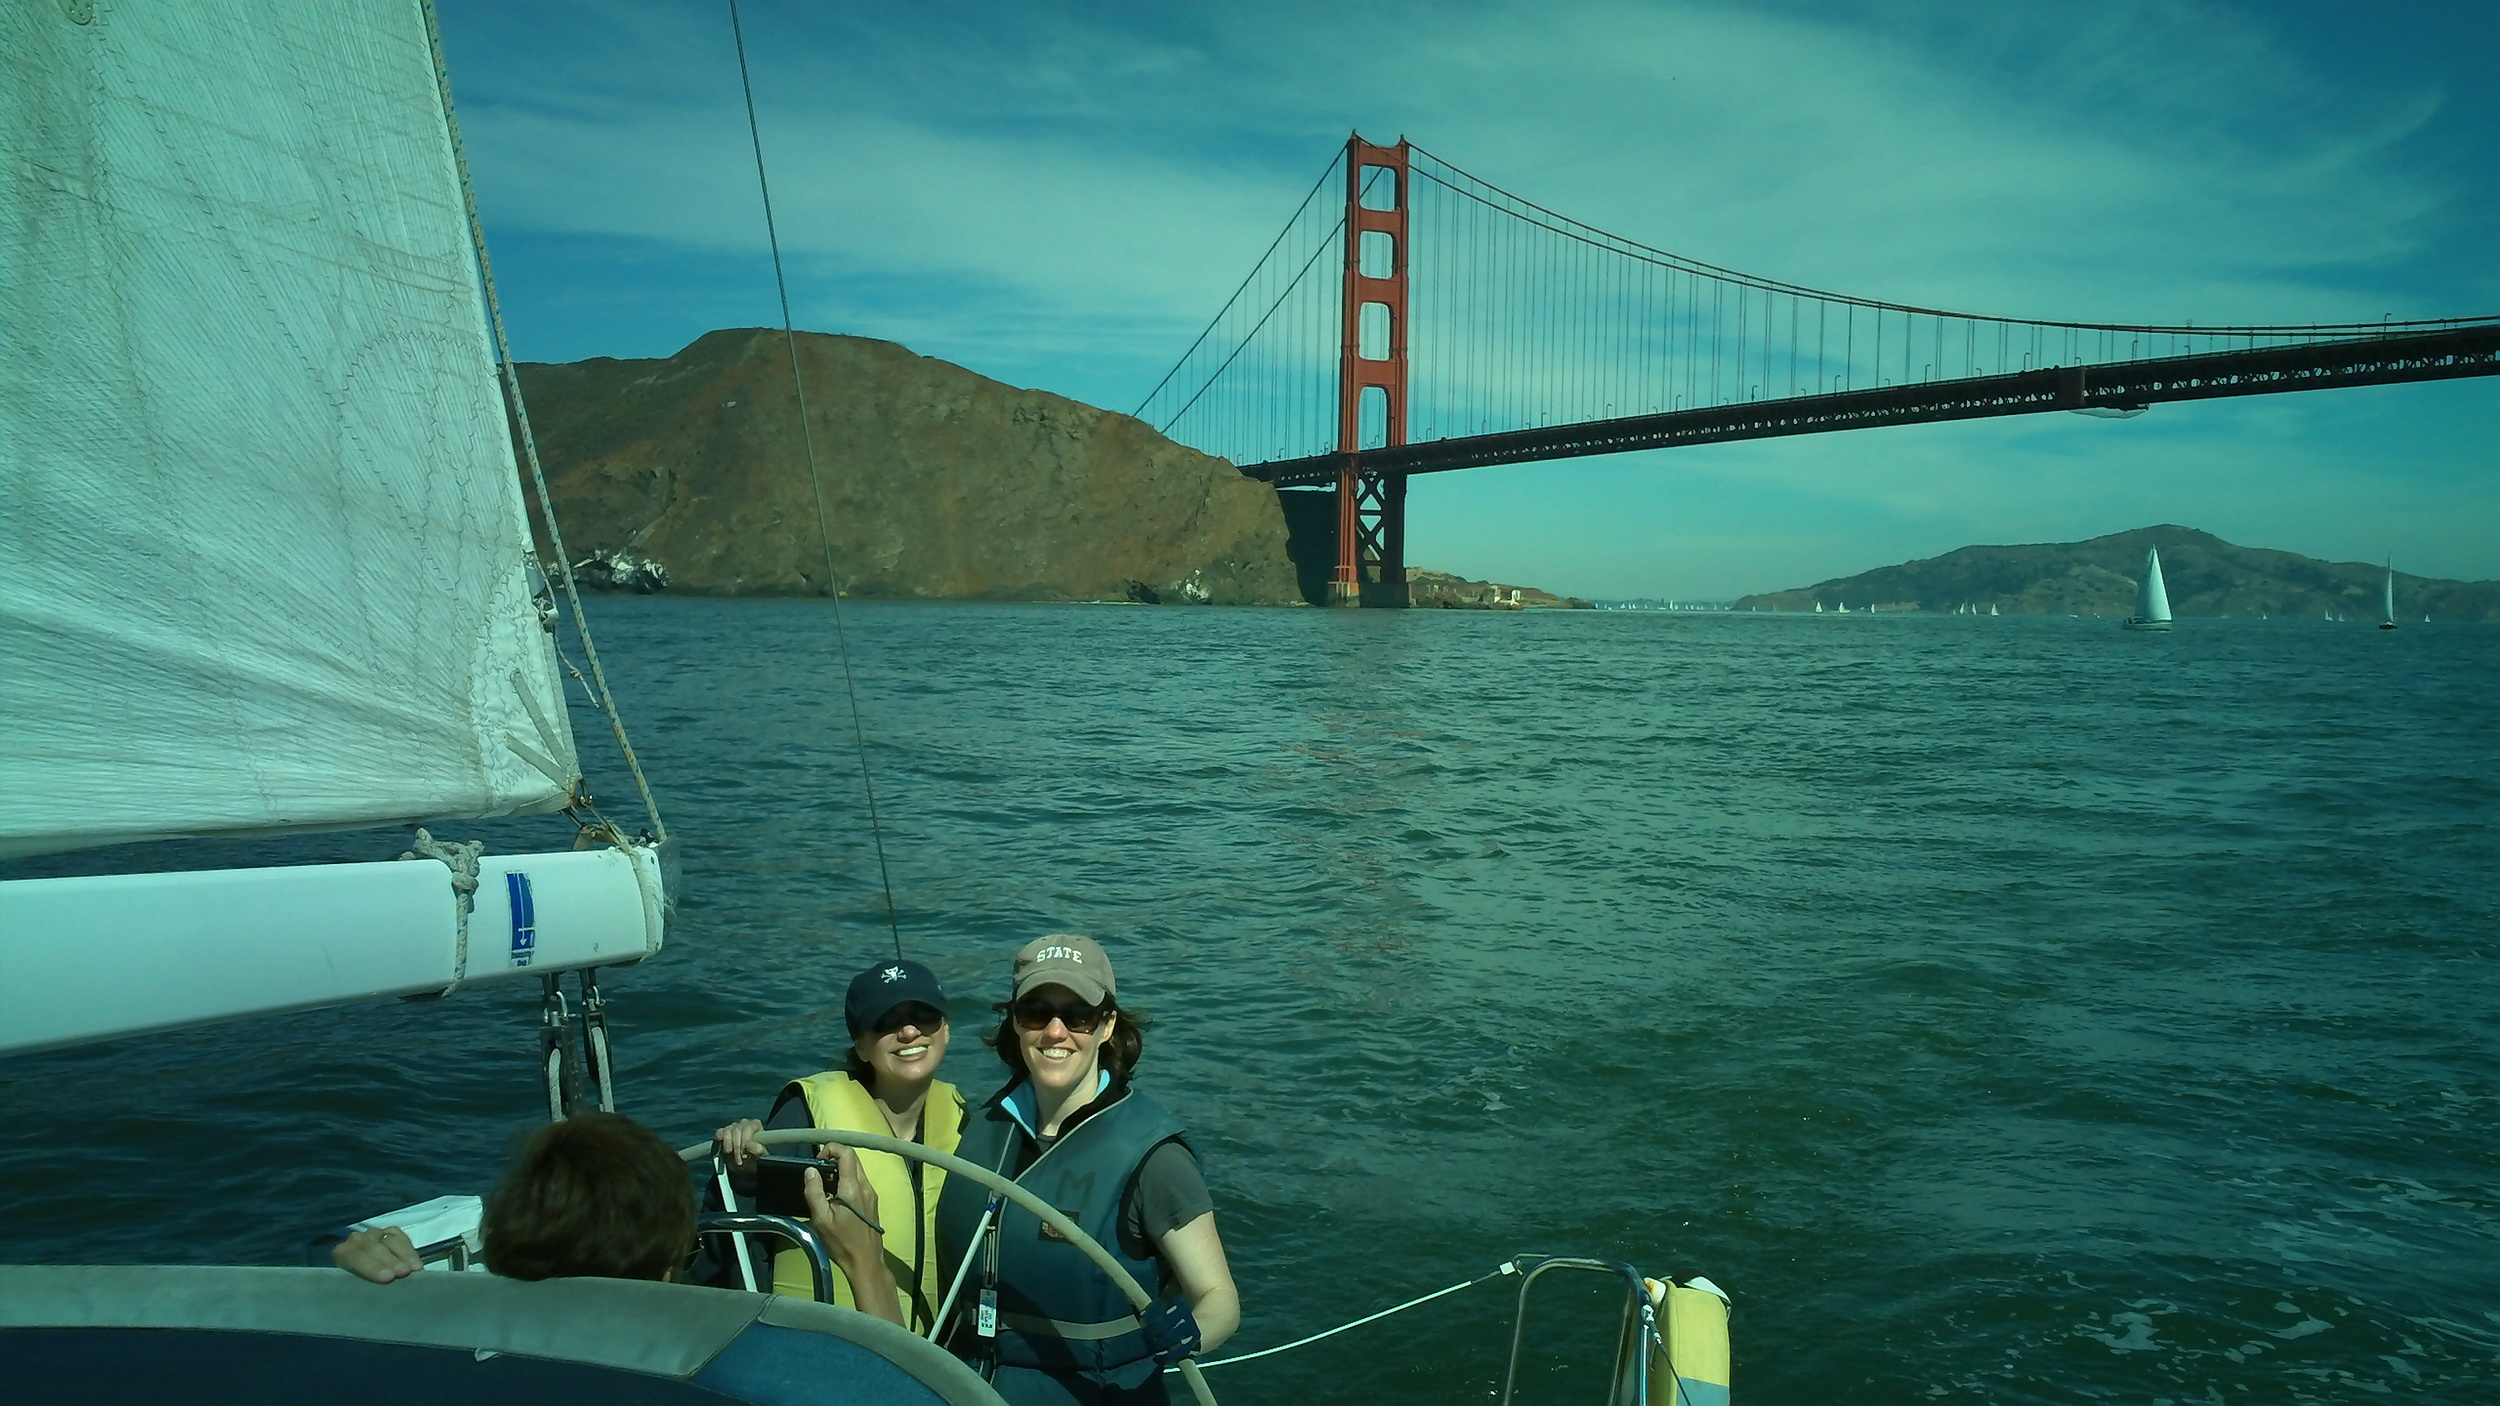 Cynthia & Liz and the Golden Gate Bridge.